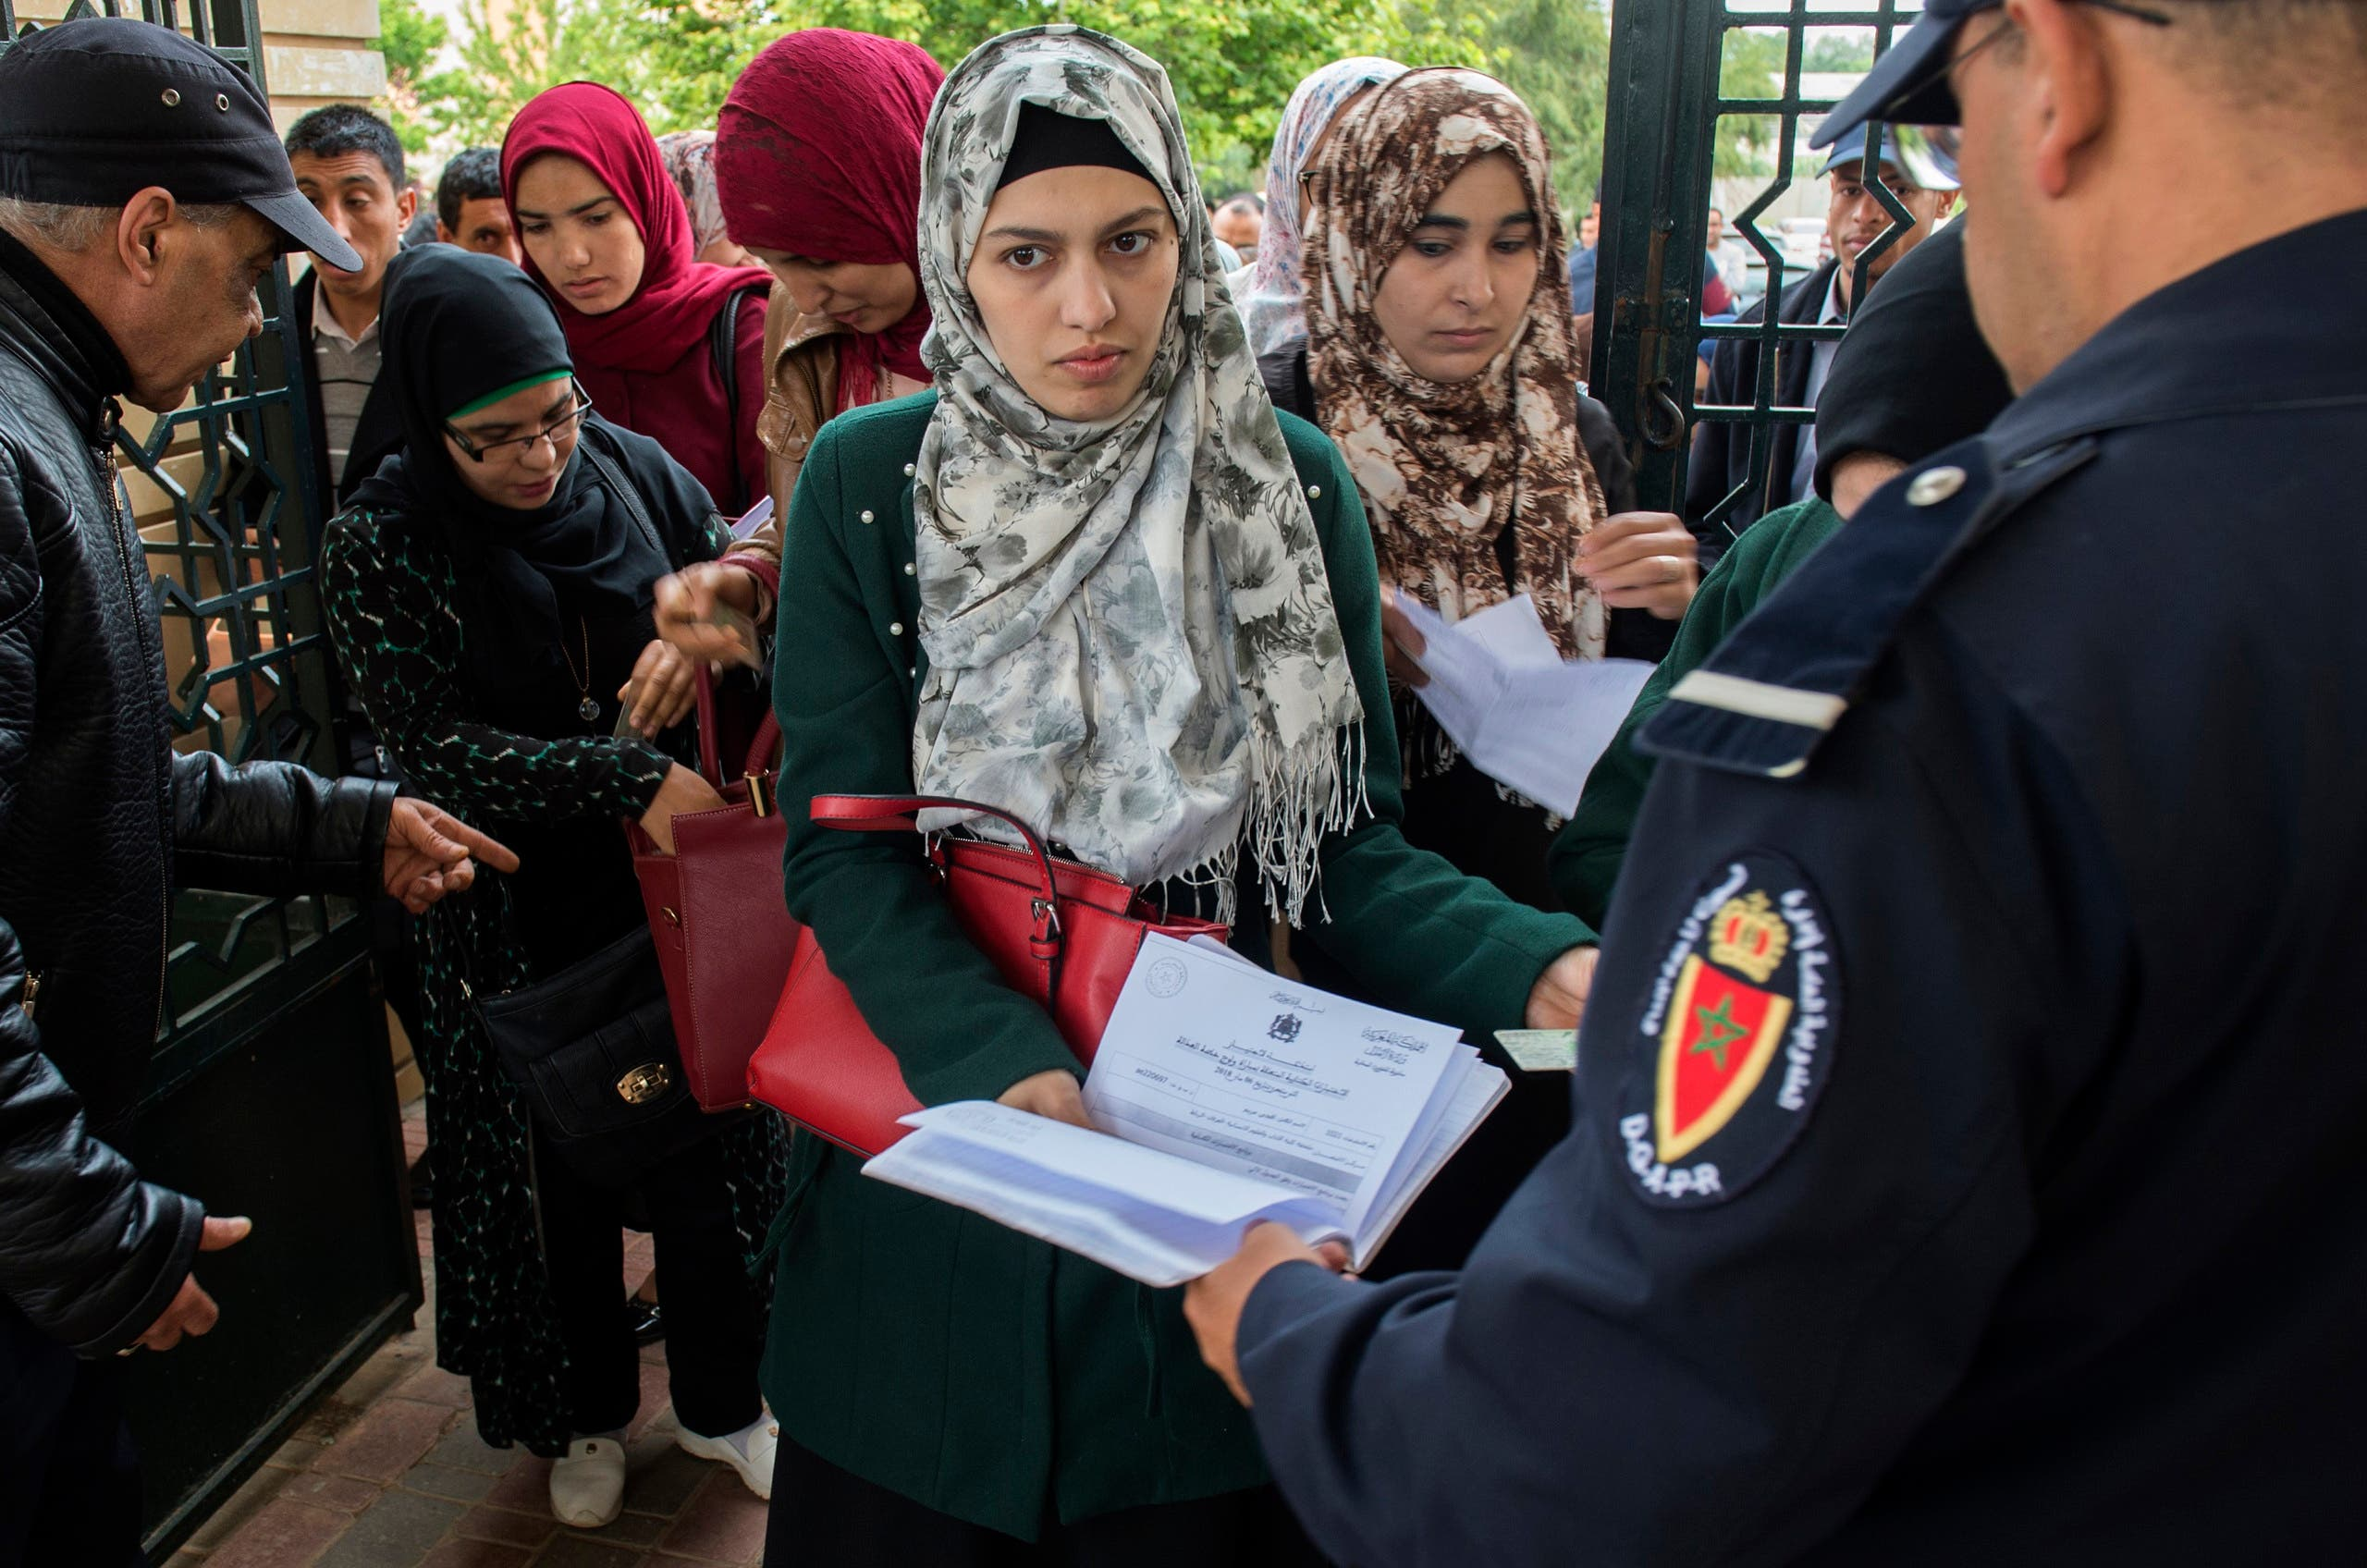 Moroccan women arrive to sit an exam to become a notary in Islamic law, in Rabat on May 6, 2018, after the position was opened to women for the first time in Morocco. (AFP)